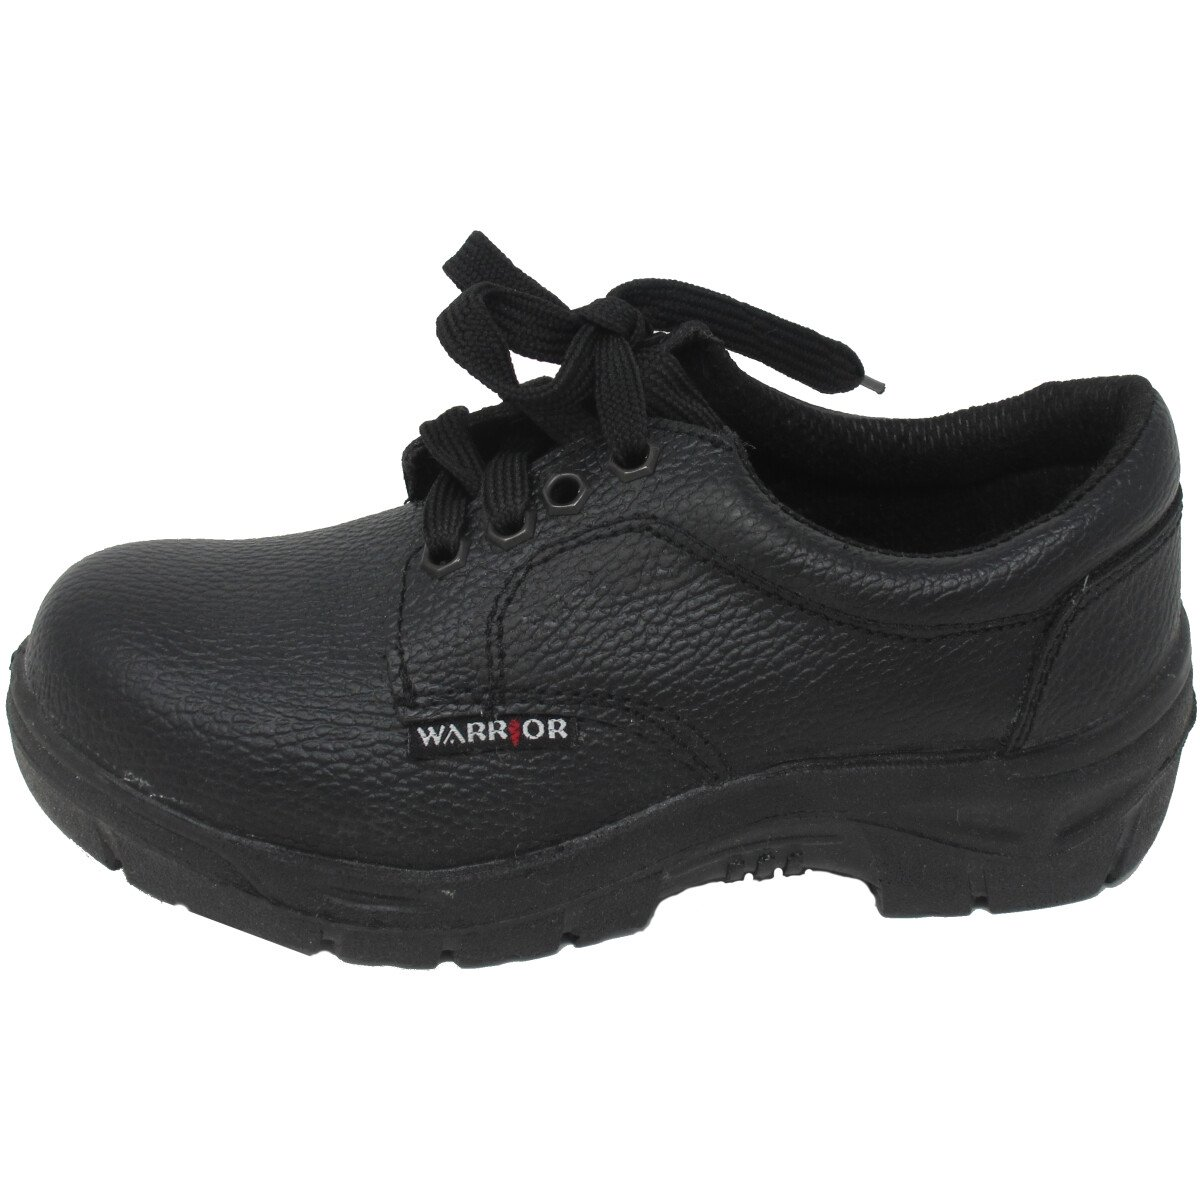 Warrior MMS2 S1P SRC Safety Shoe - UK Size 13 (Clearance Size)